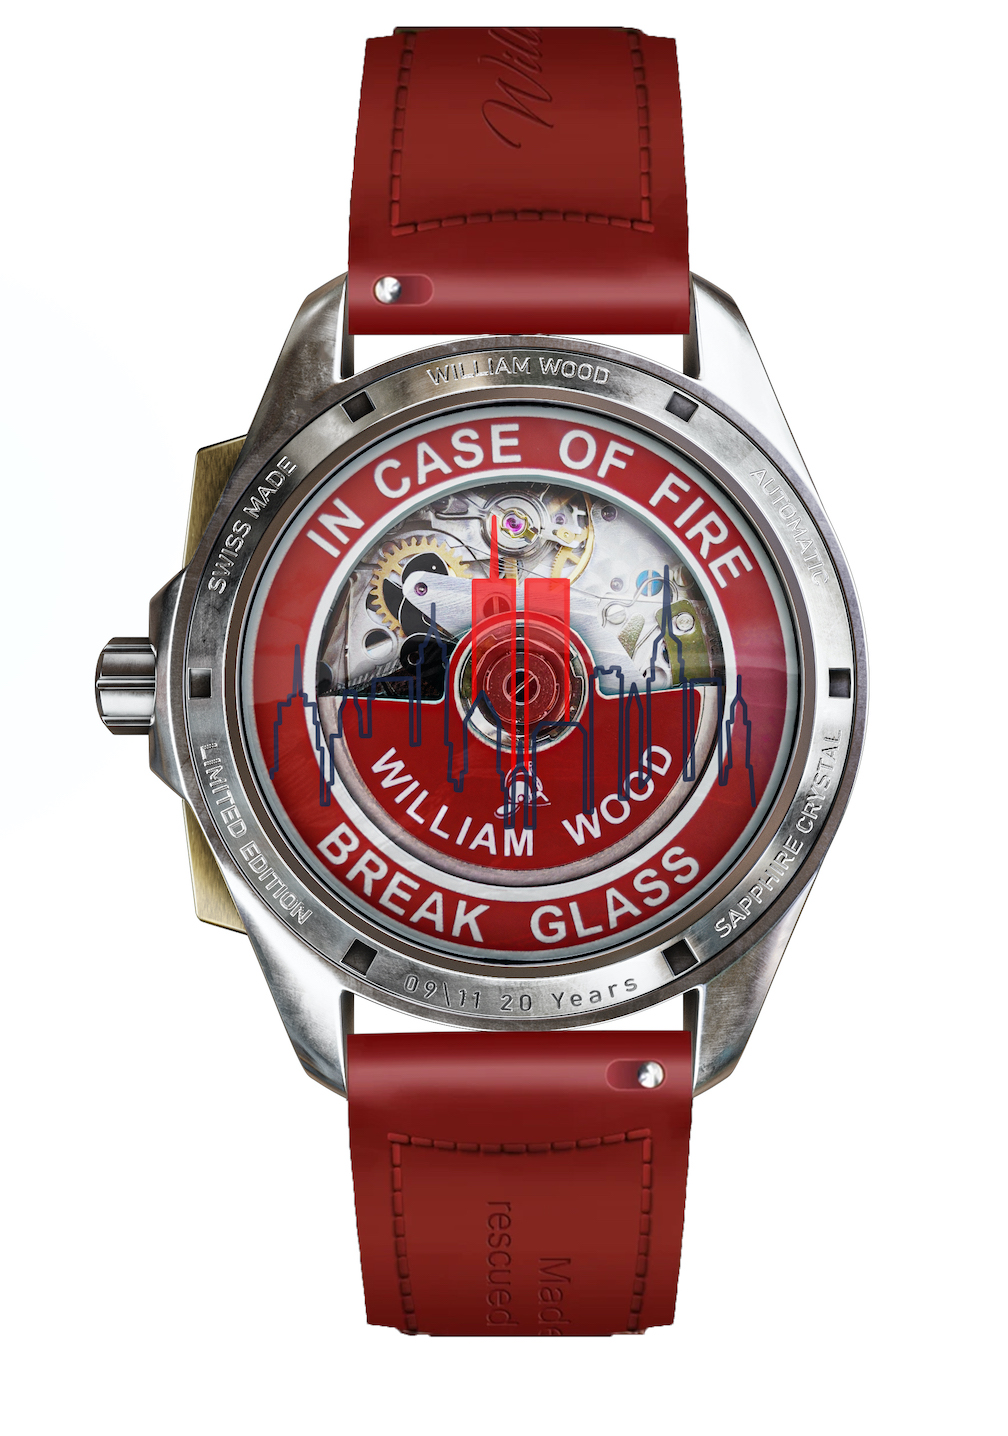 William Wood Time for Heroes watch